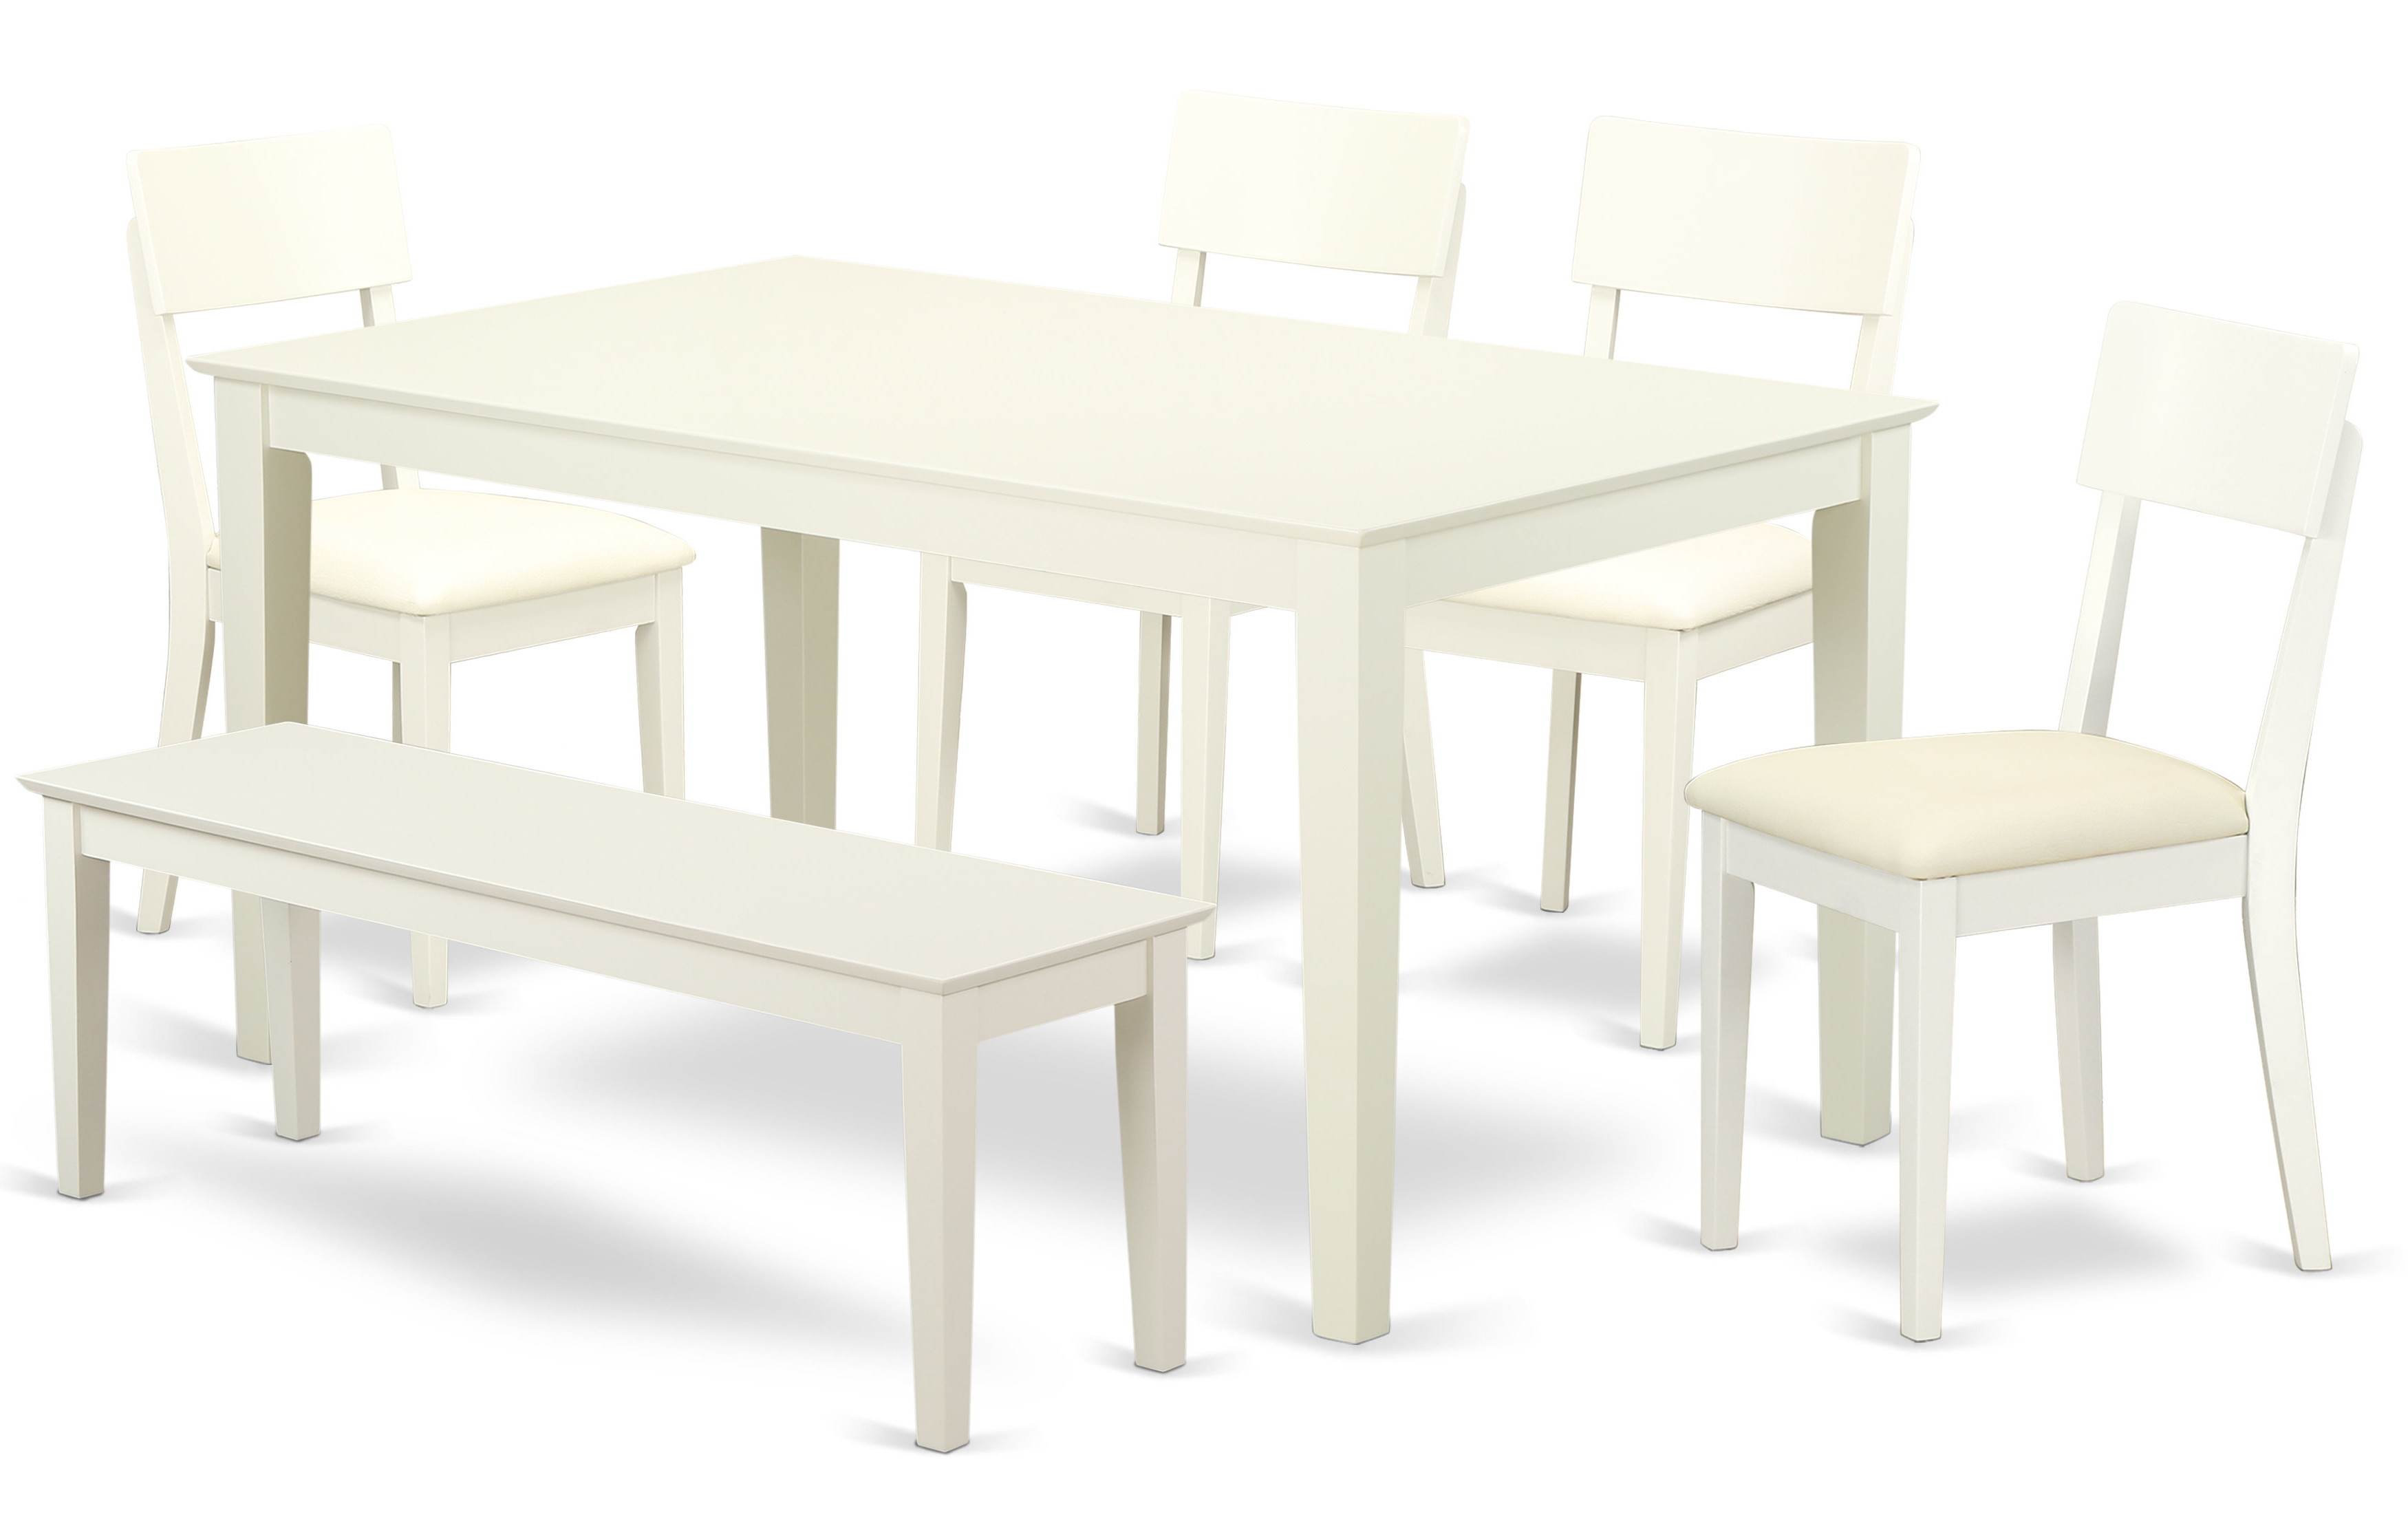 Wayfair Throughout Most Popular Smyrna 3 Piece Dining Sets (View 22 of 25)